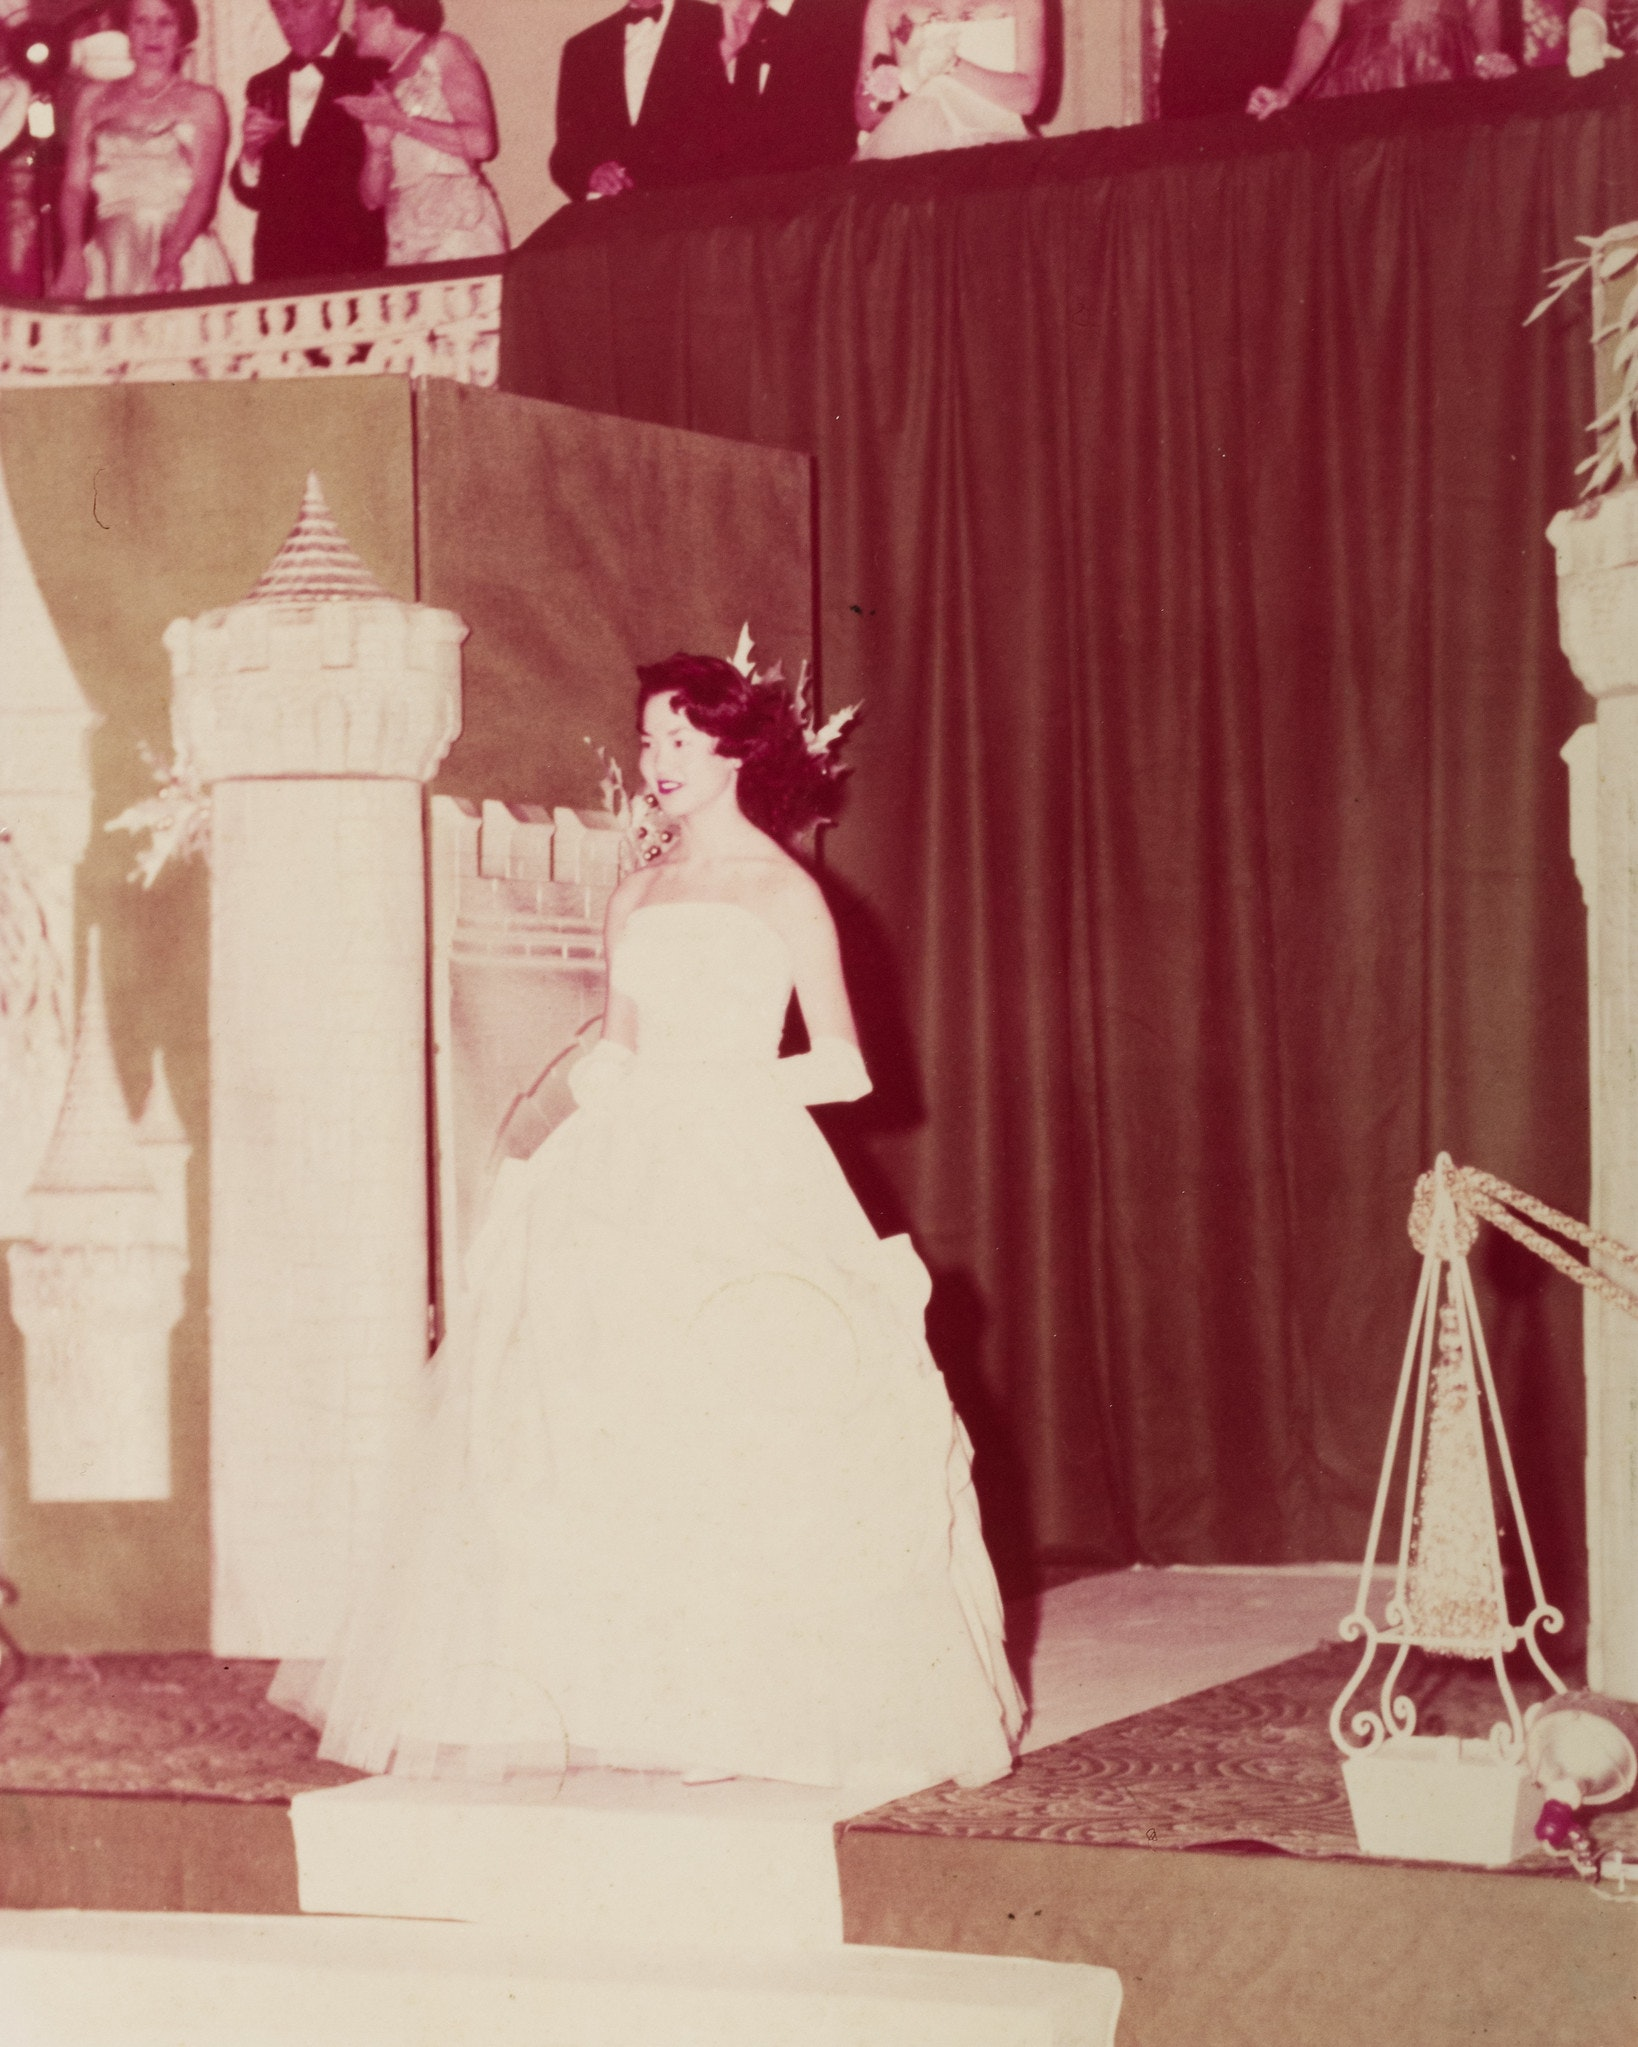 Sepia toned image of Alice in long white gown